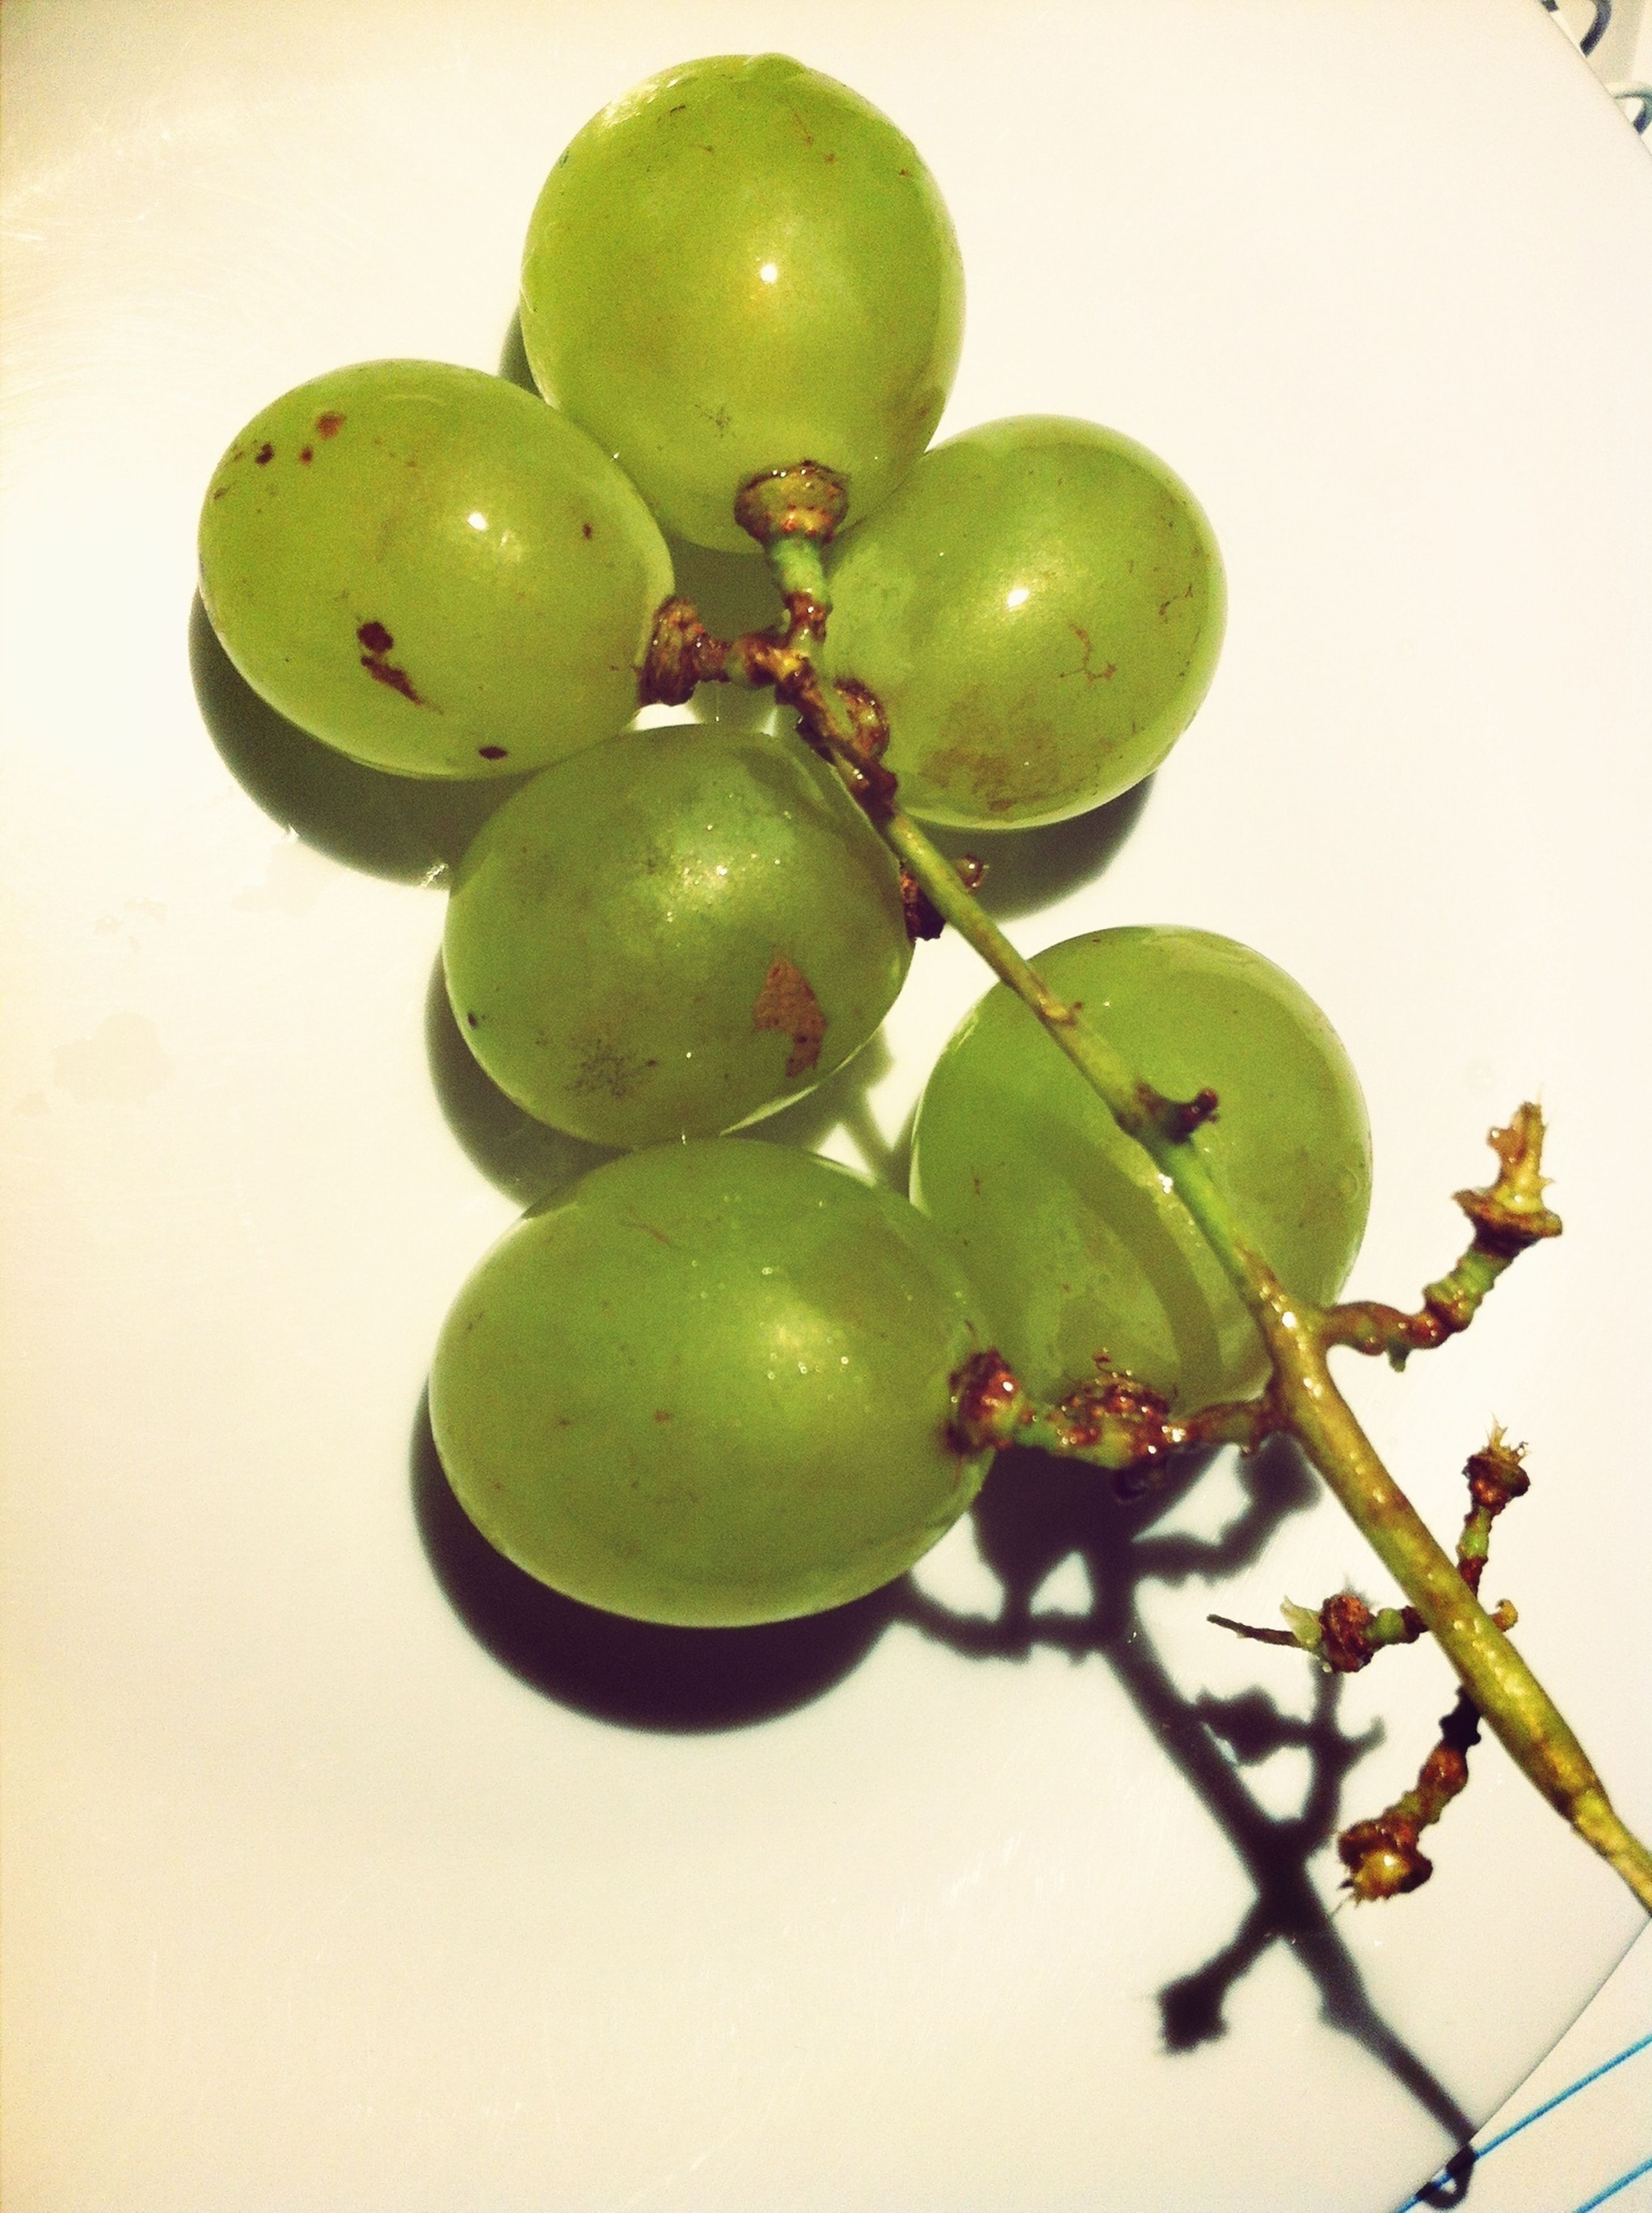 fruit, food and drink, healthy eating, food, green color, leaf, freshness, close-up, hanging, grape, indoors, ripe, still life, branch, table, apple, organic, no people, green, growth